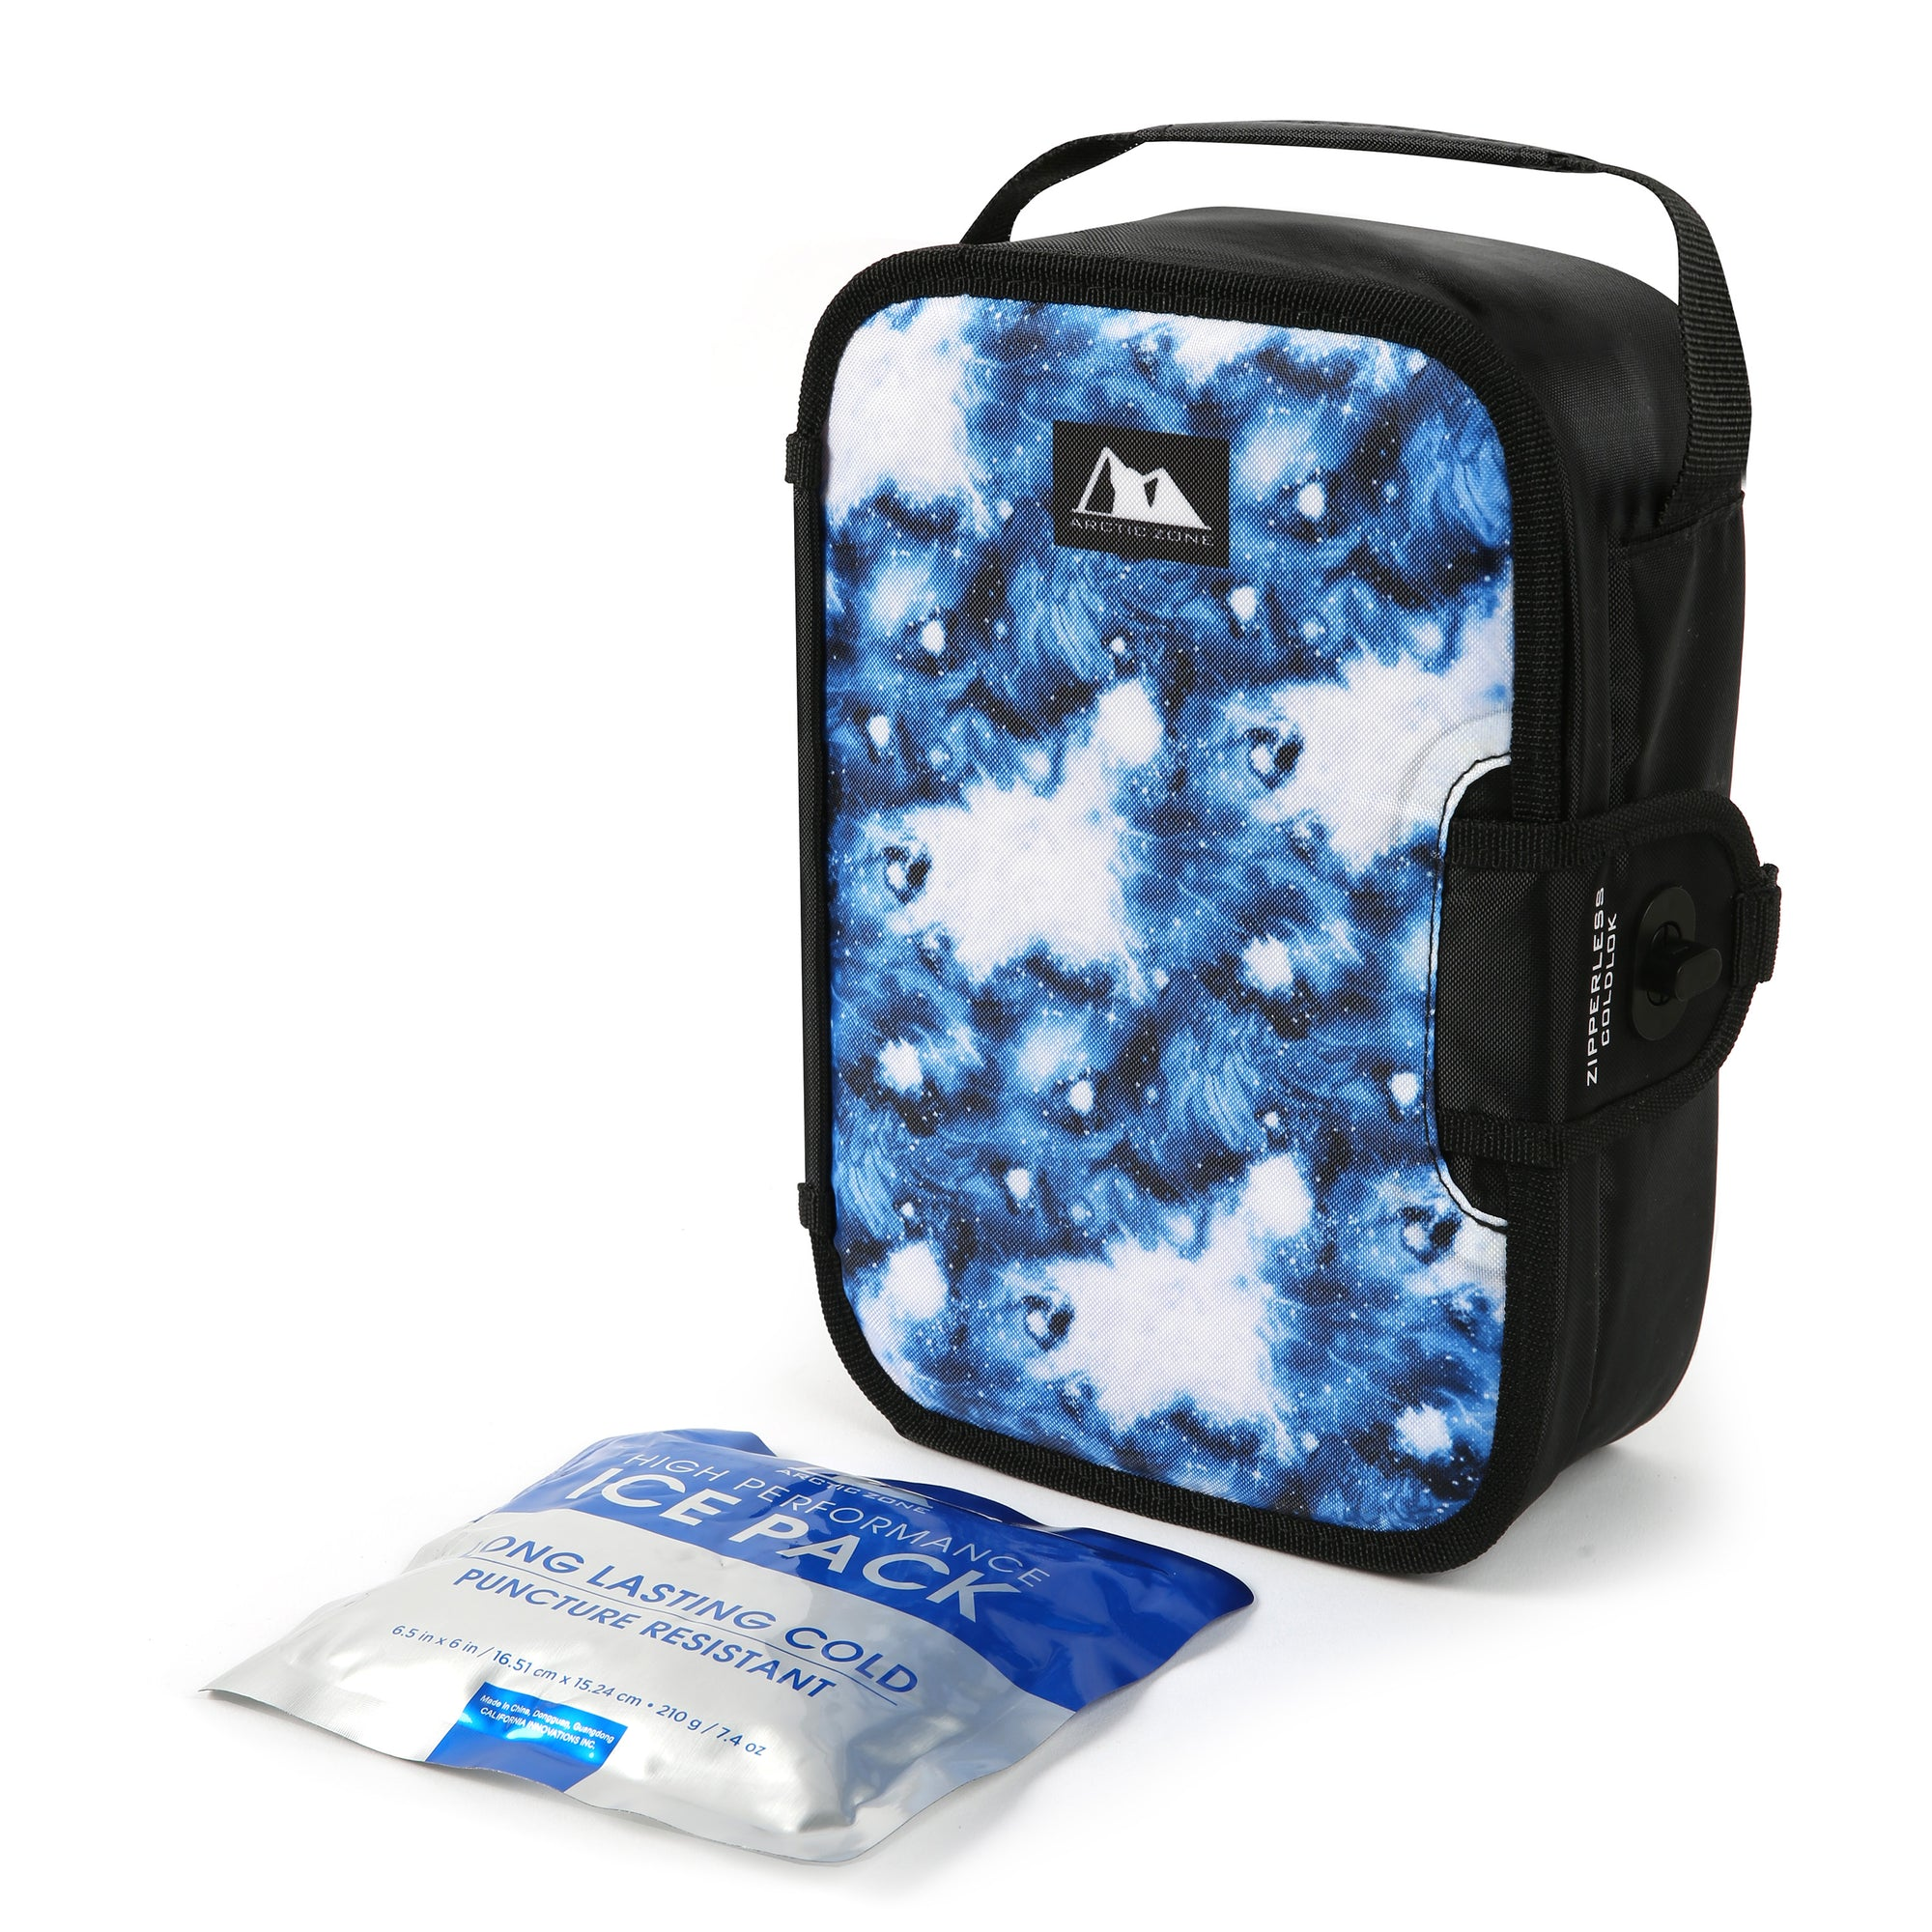 Arctic Zone® Kids Graphic Zipperless - Galaxy - Lunch box with ice pack